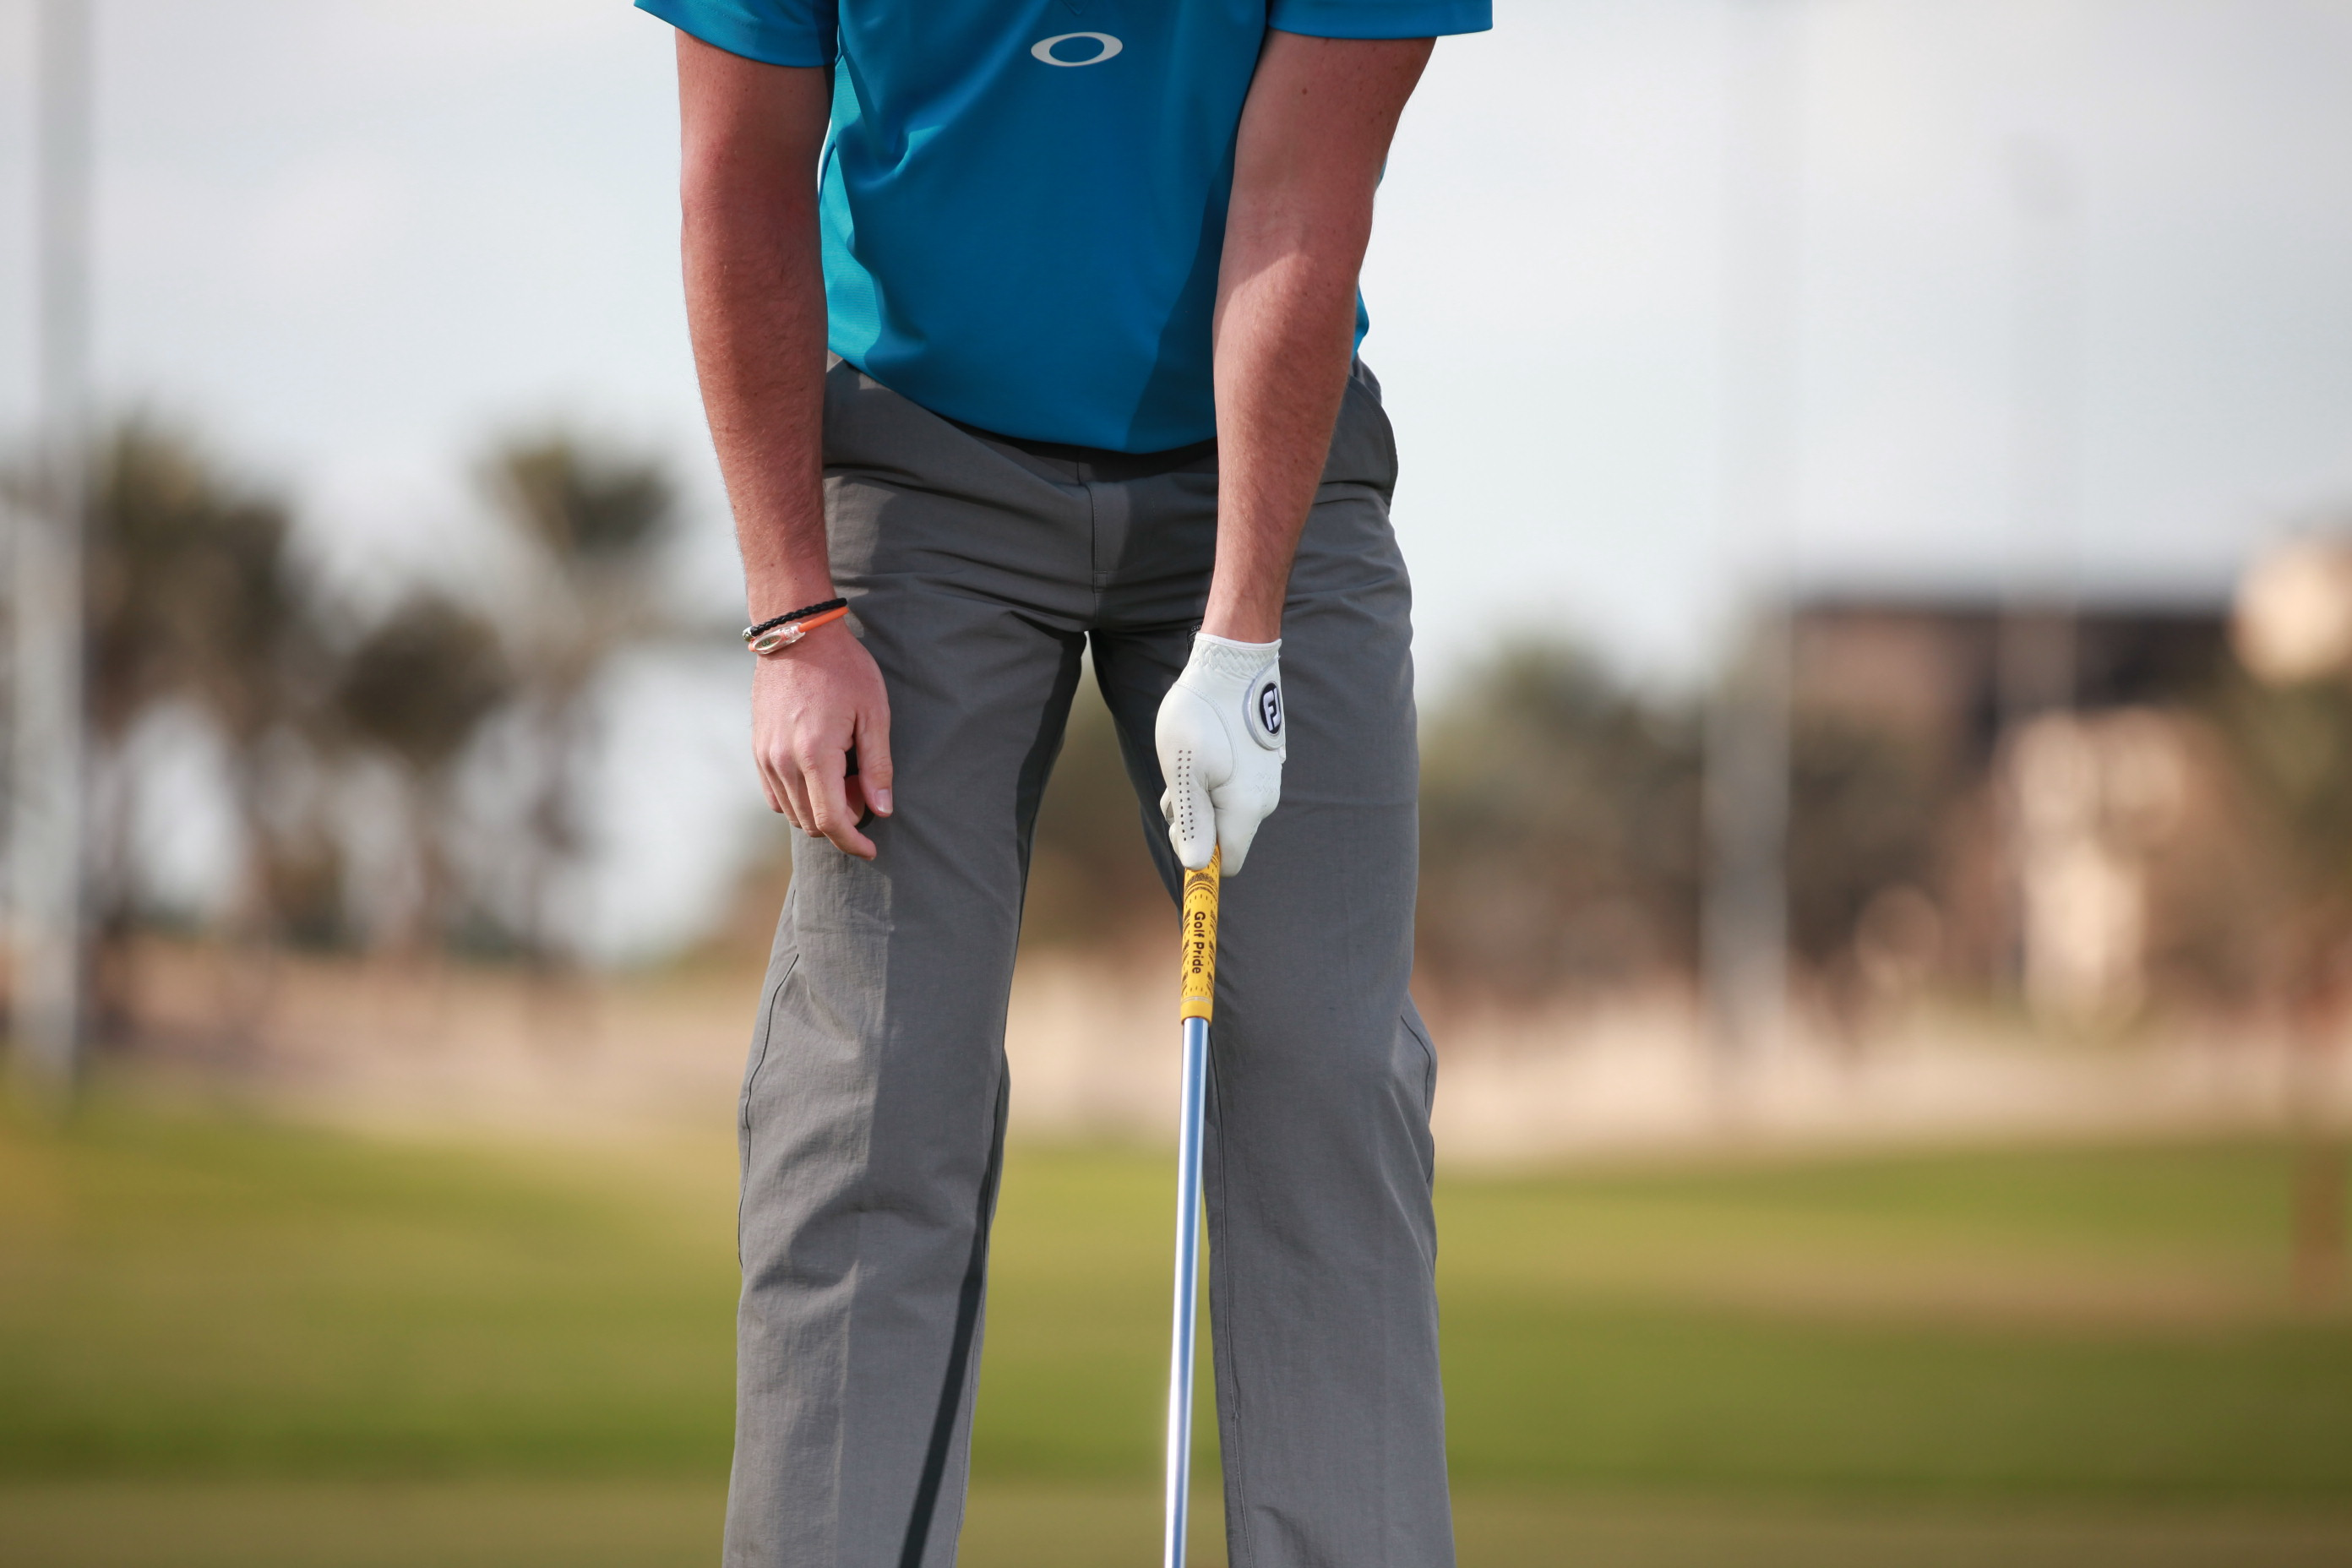 Rory McIlroy Pitching Tips - Golf Monthly